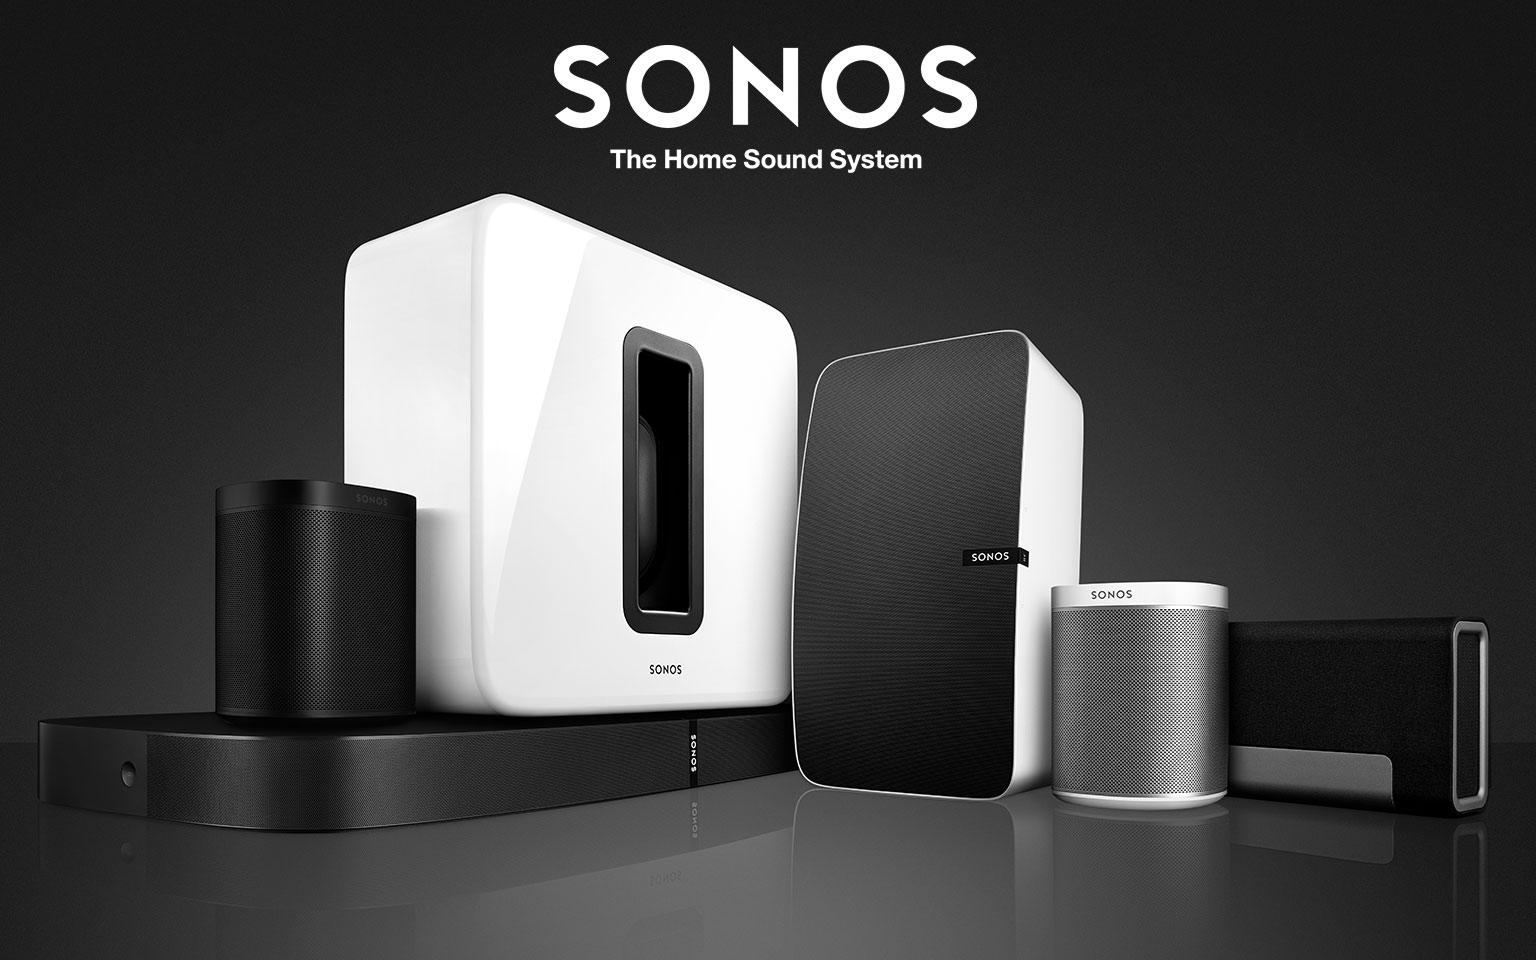 Sonos The home sound system. several black and white speakers.